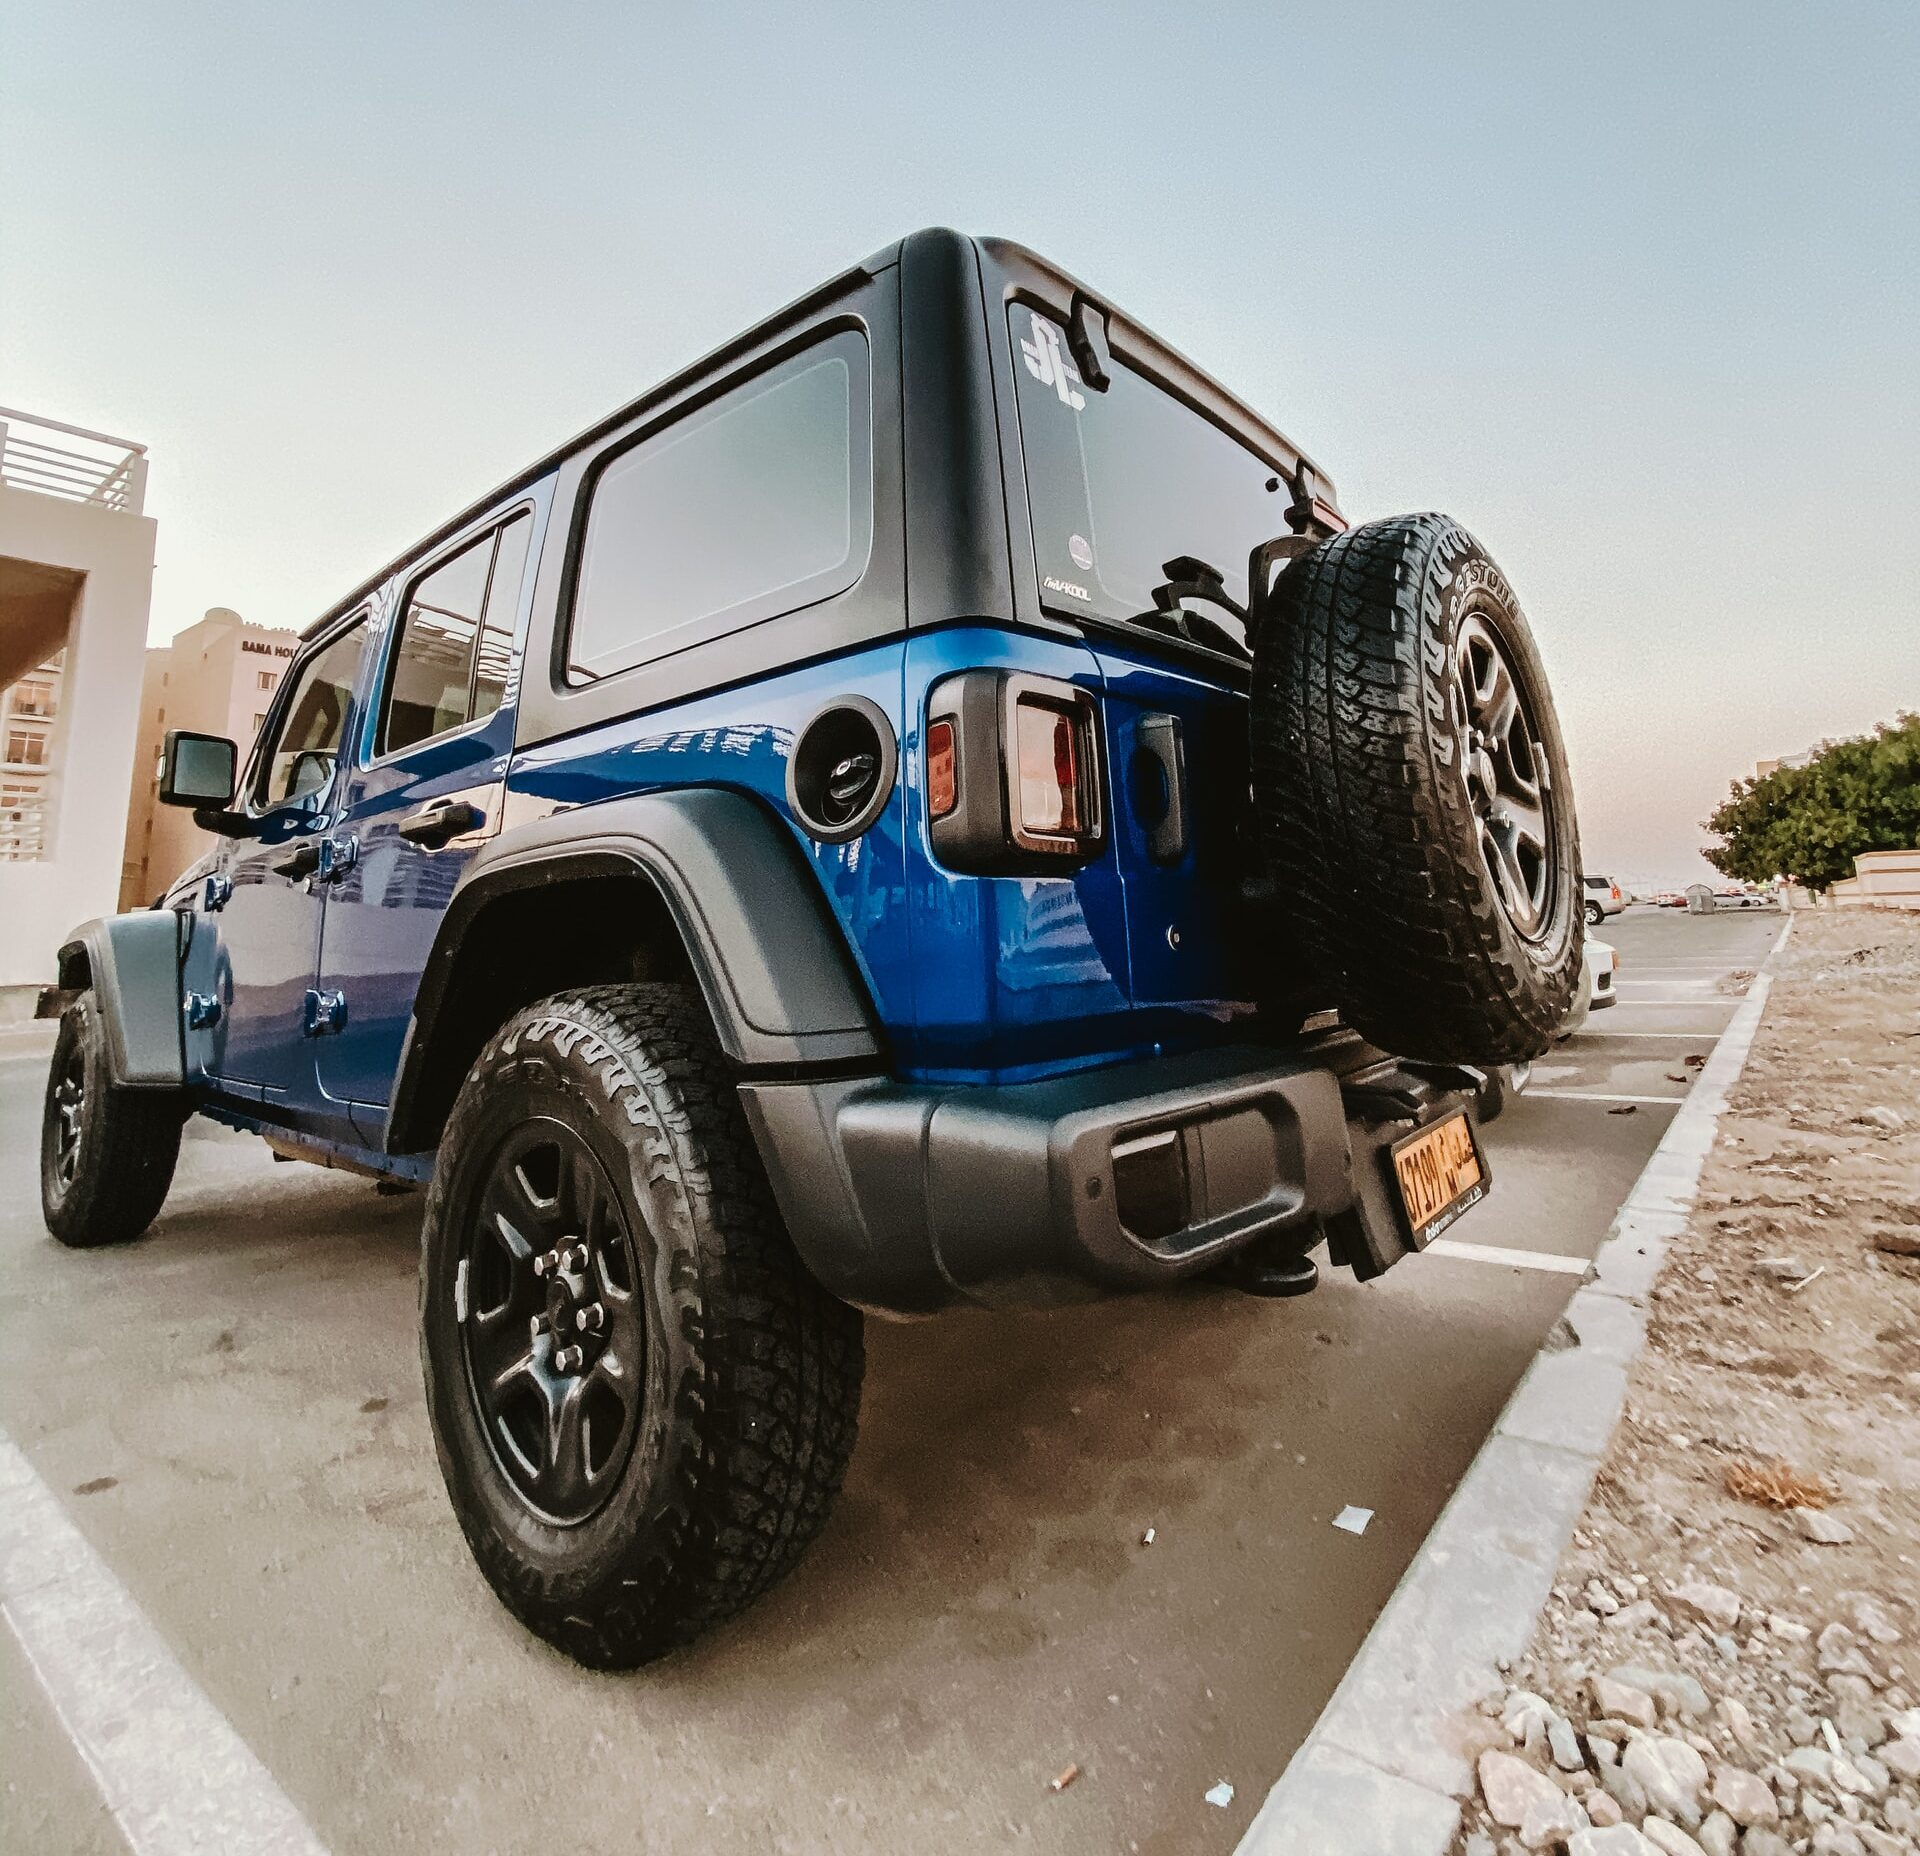 Read more about the article Best Pressure Washer For Jeep Wrangler | Let's Find Out